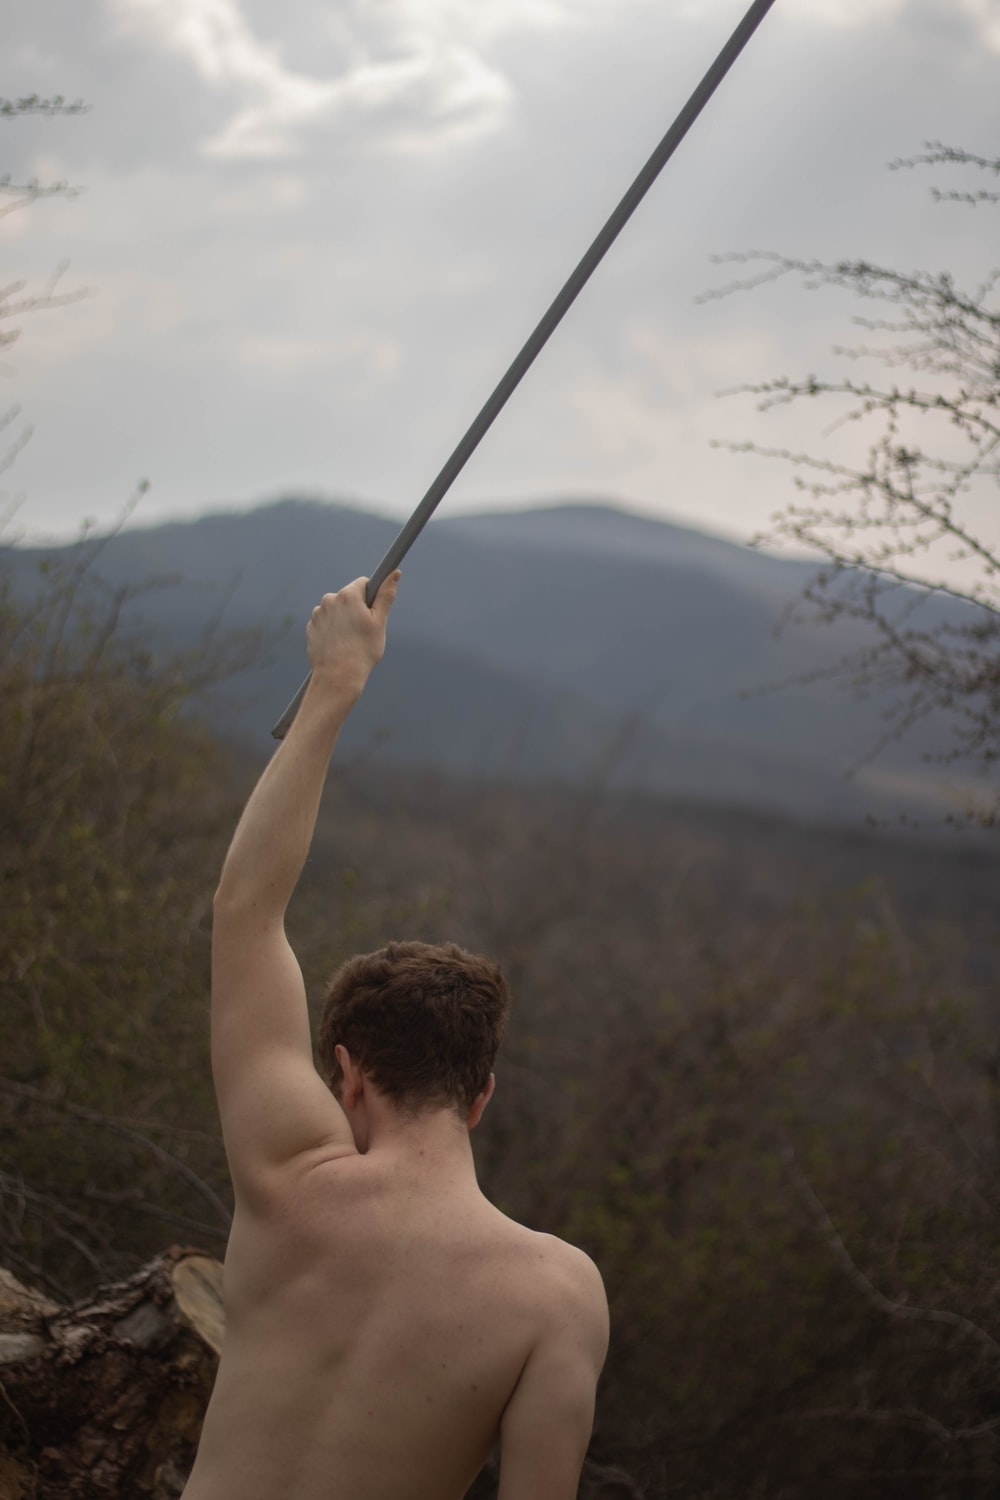 topless man holding stick during daytime